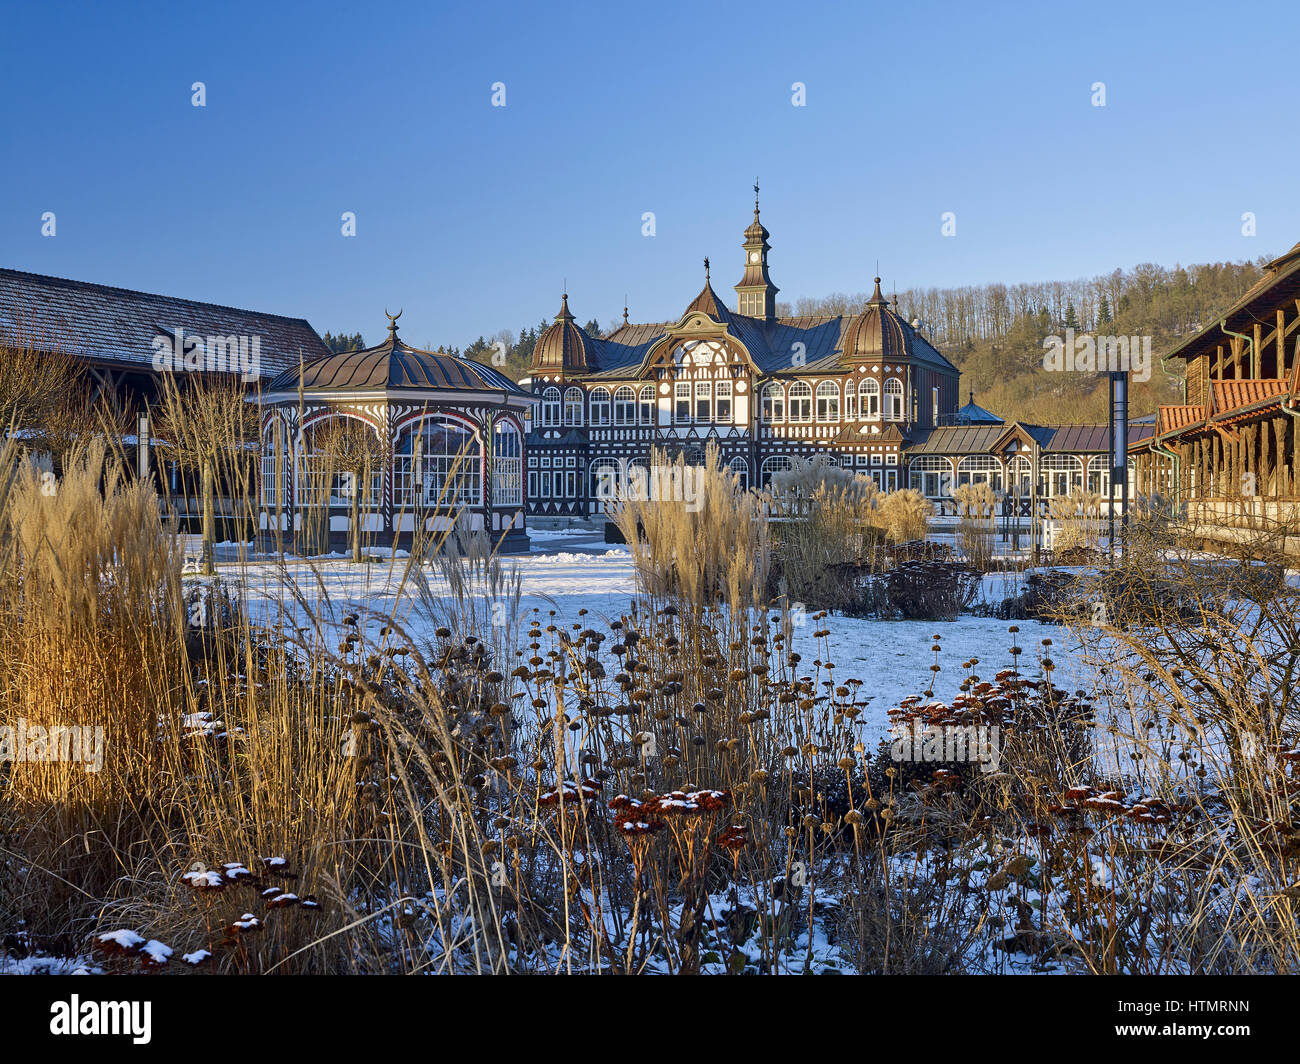 Central building of the spa house in Bad Salzungen, Germany - Stock Image